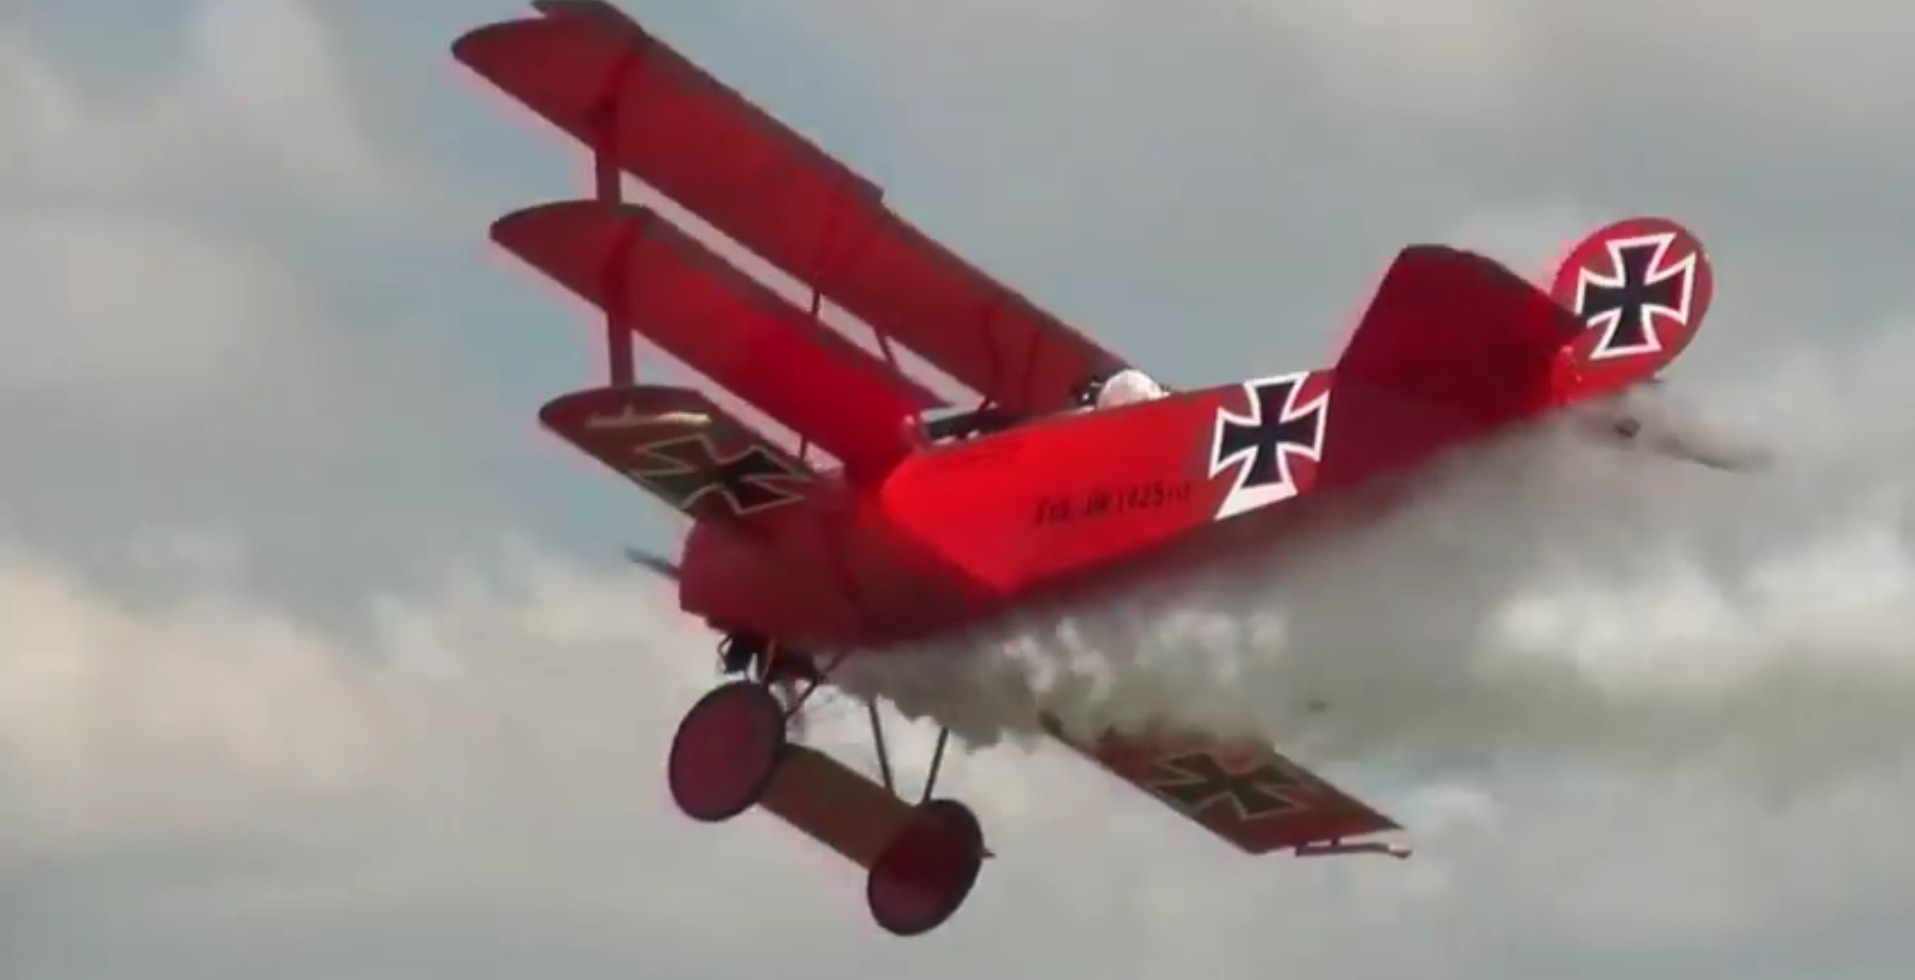 red baron fokker triplane model is almost as big as the real thing autoevolution. Black Bedroom Furniture Sets. Home Design Ideas